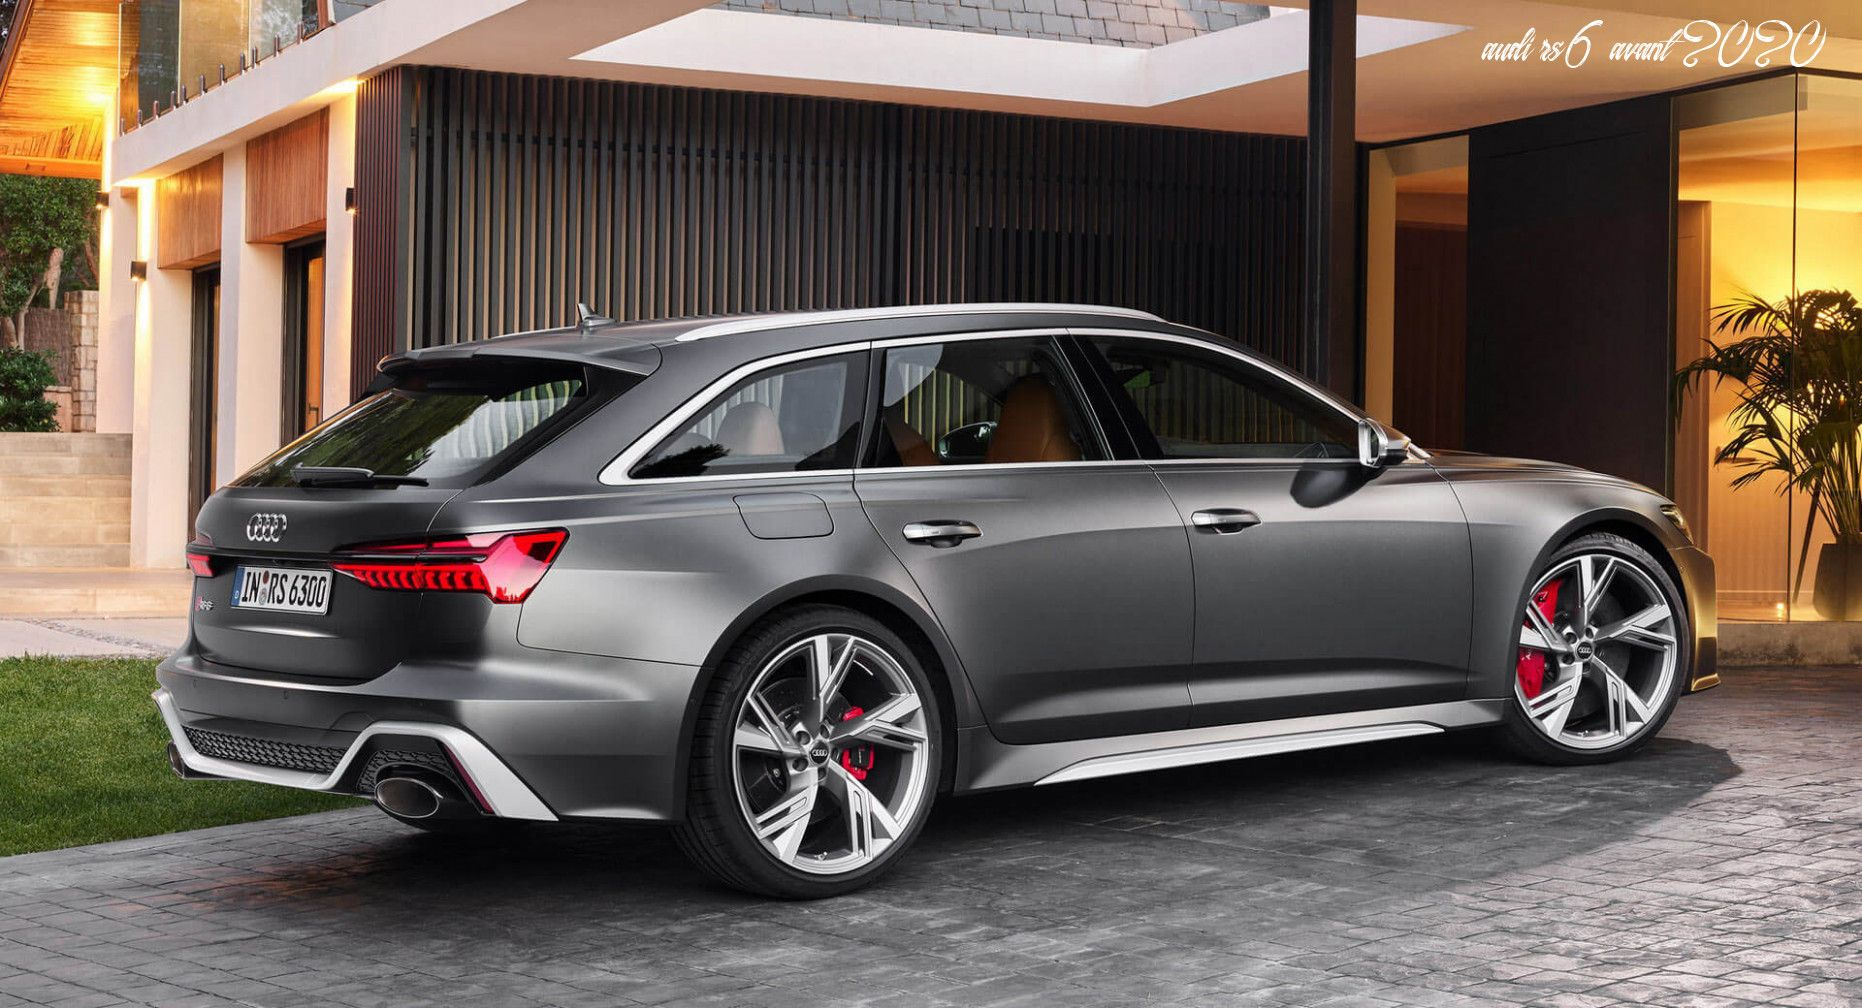 Audi Rs6 Avant 2020 Review And Release Date In 2020 Audi Rs6 Malibu Car Audi Rs6 Wagon